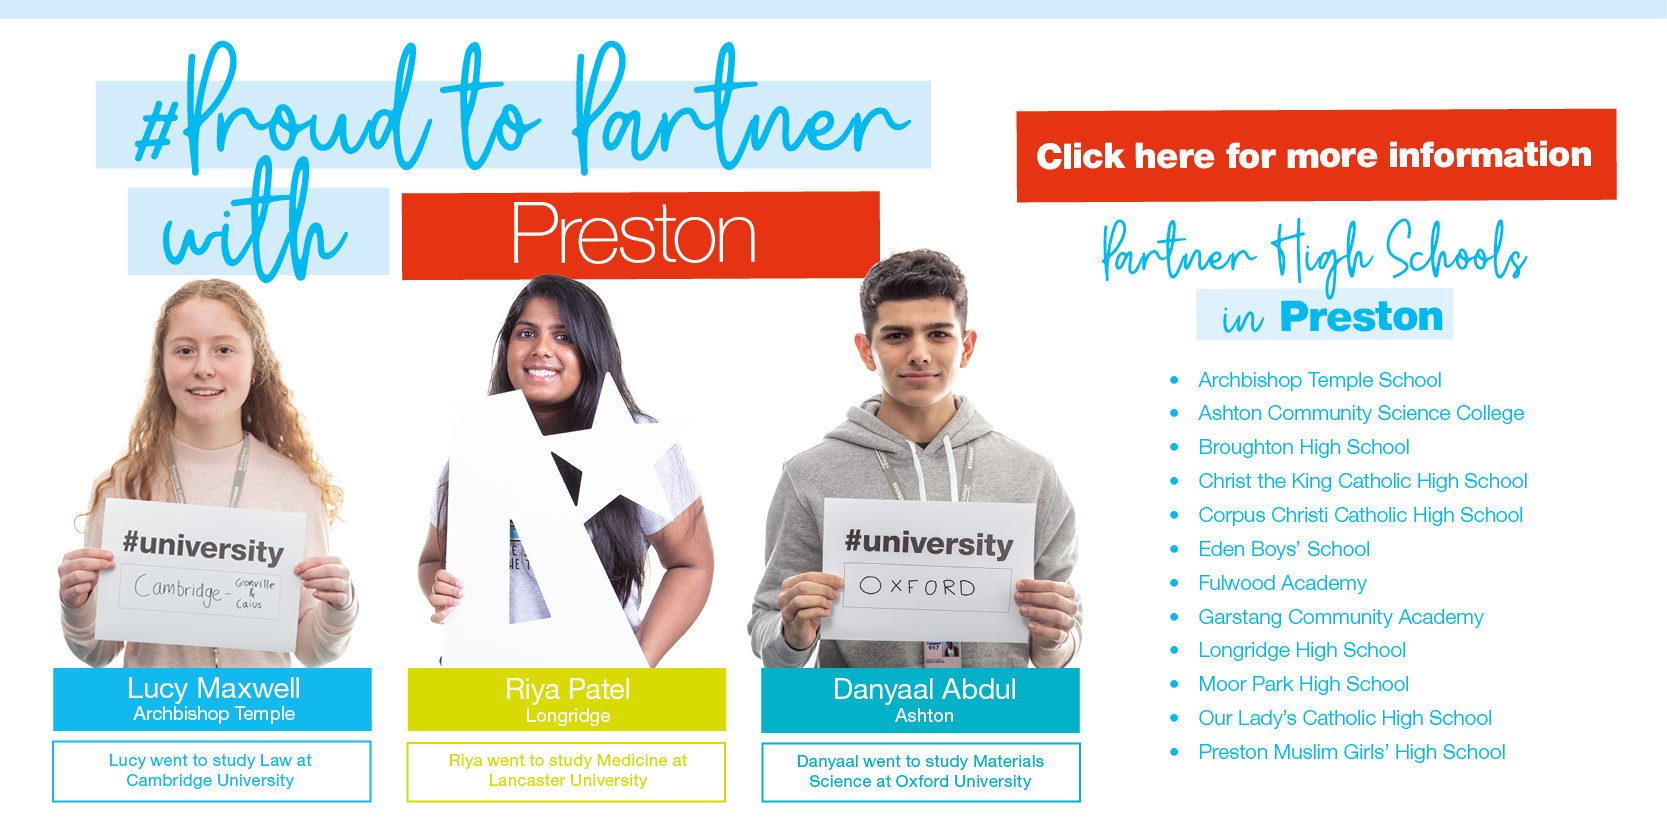 Proud to Partner with Preston... Click HERE for more information Thumbnail